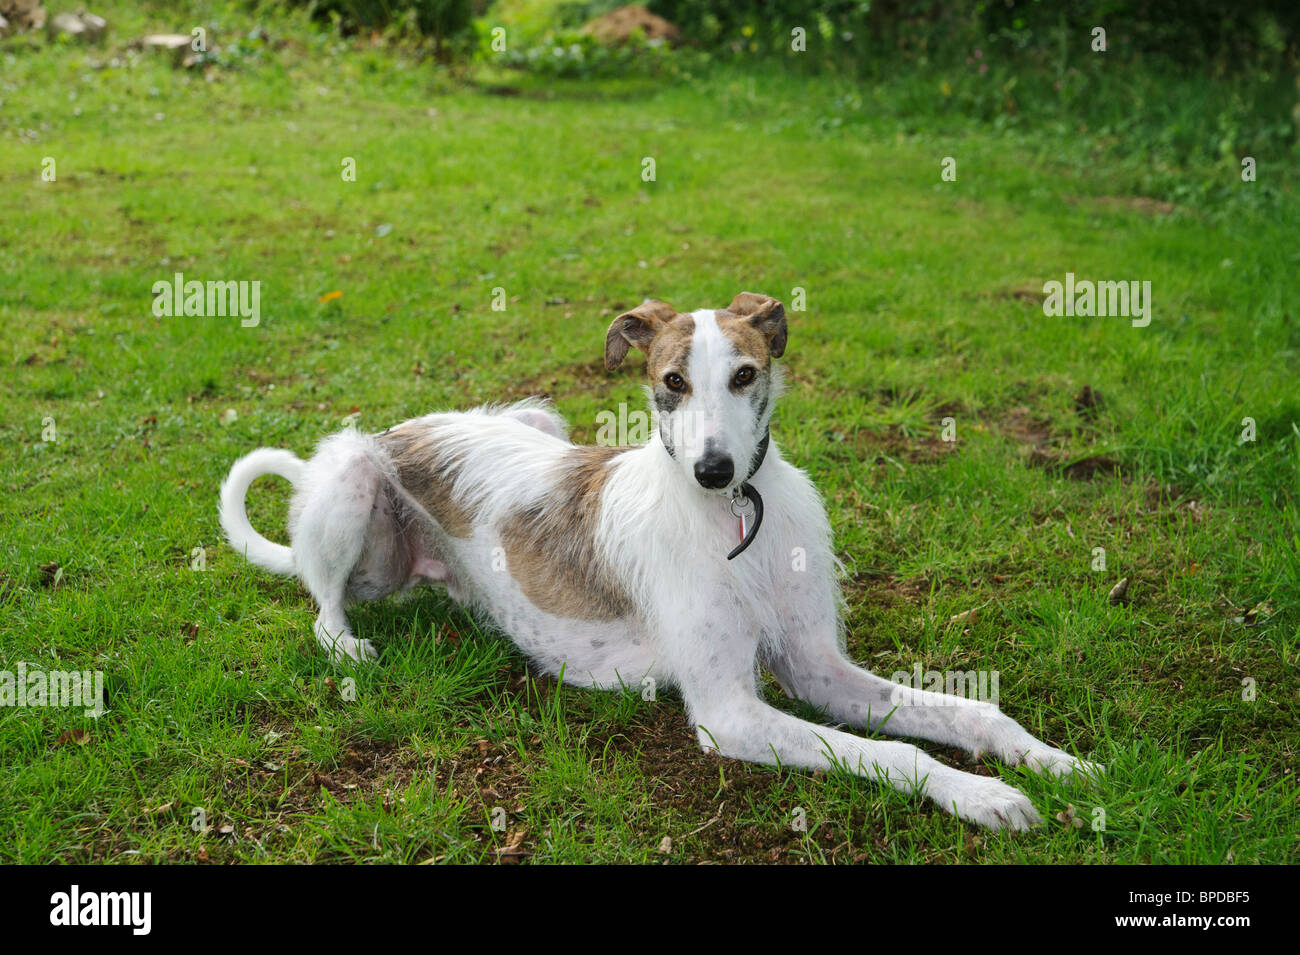 Lurcher lying on grass - Stock Image